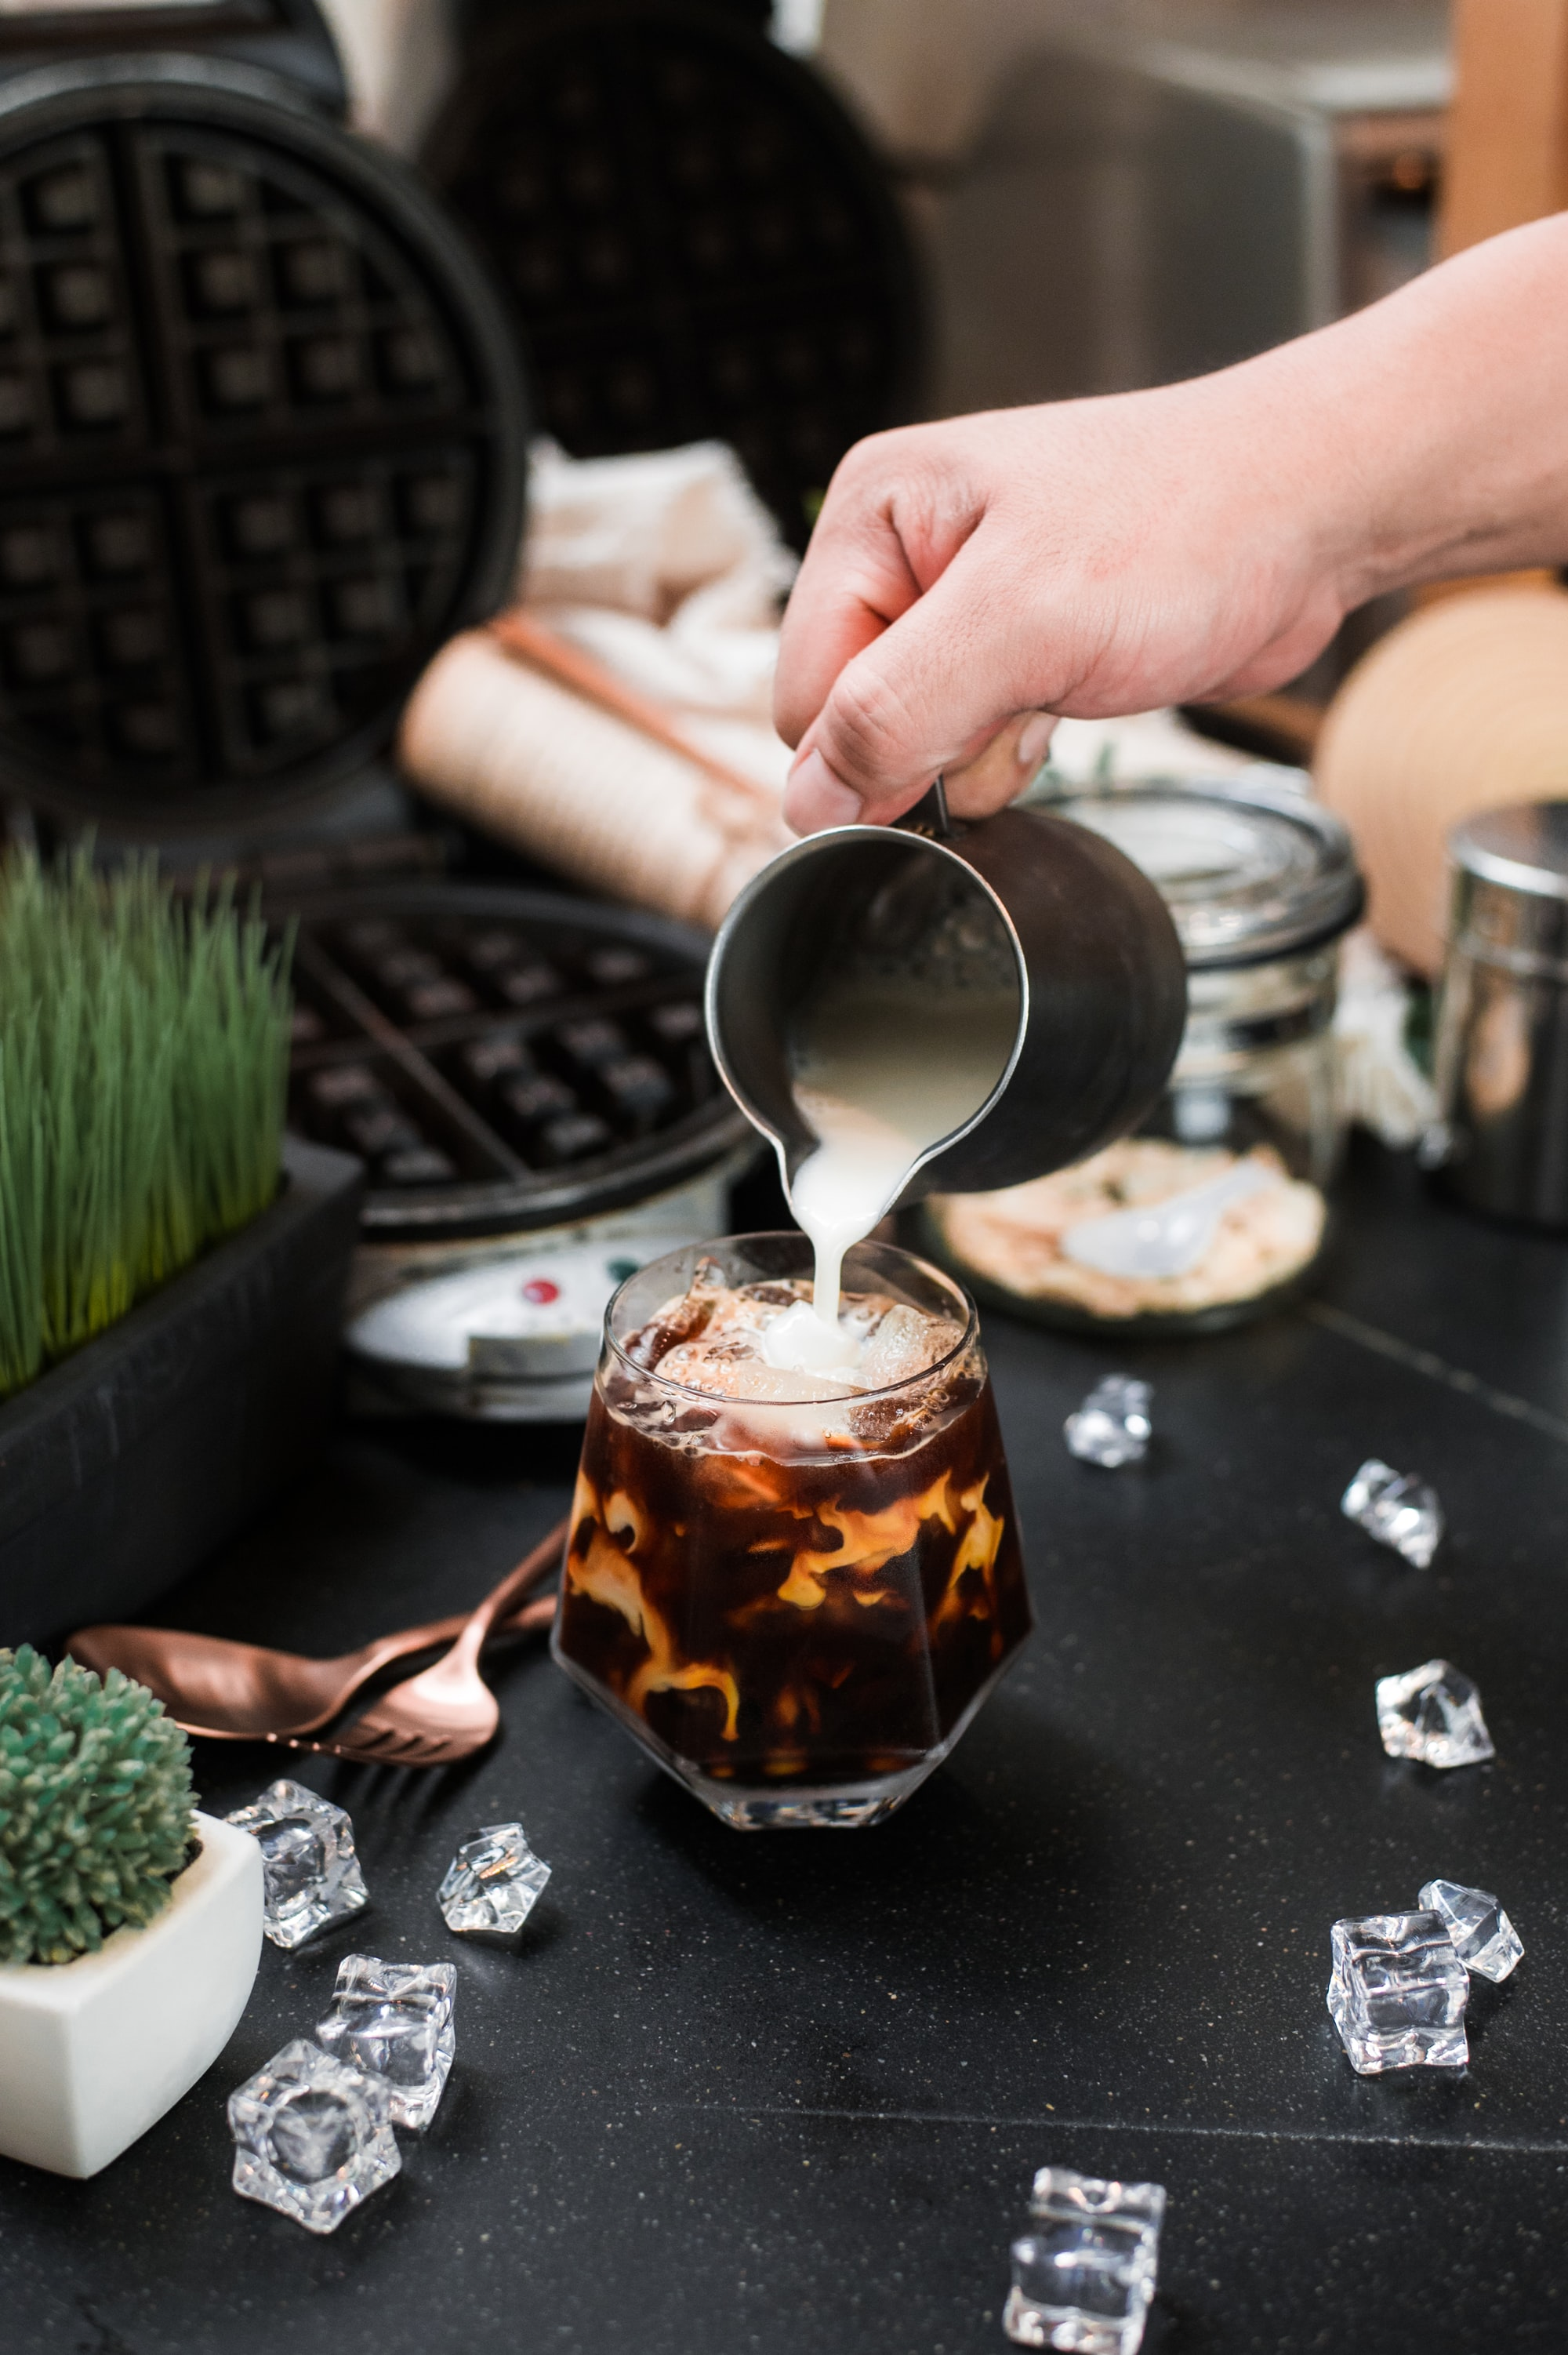 Barista pouring milk into a glass of iced coffee